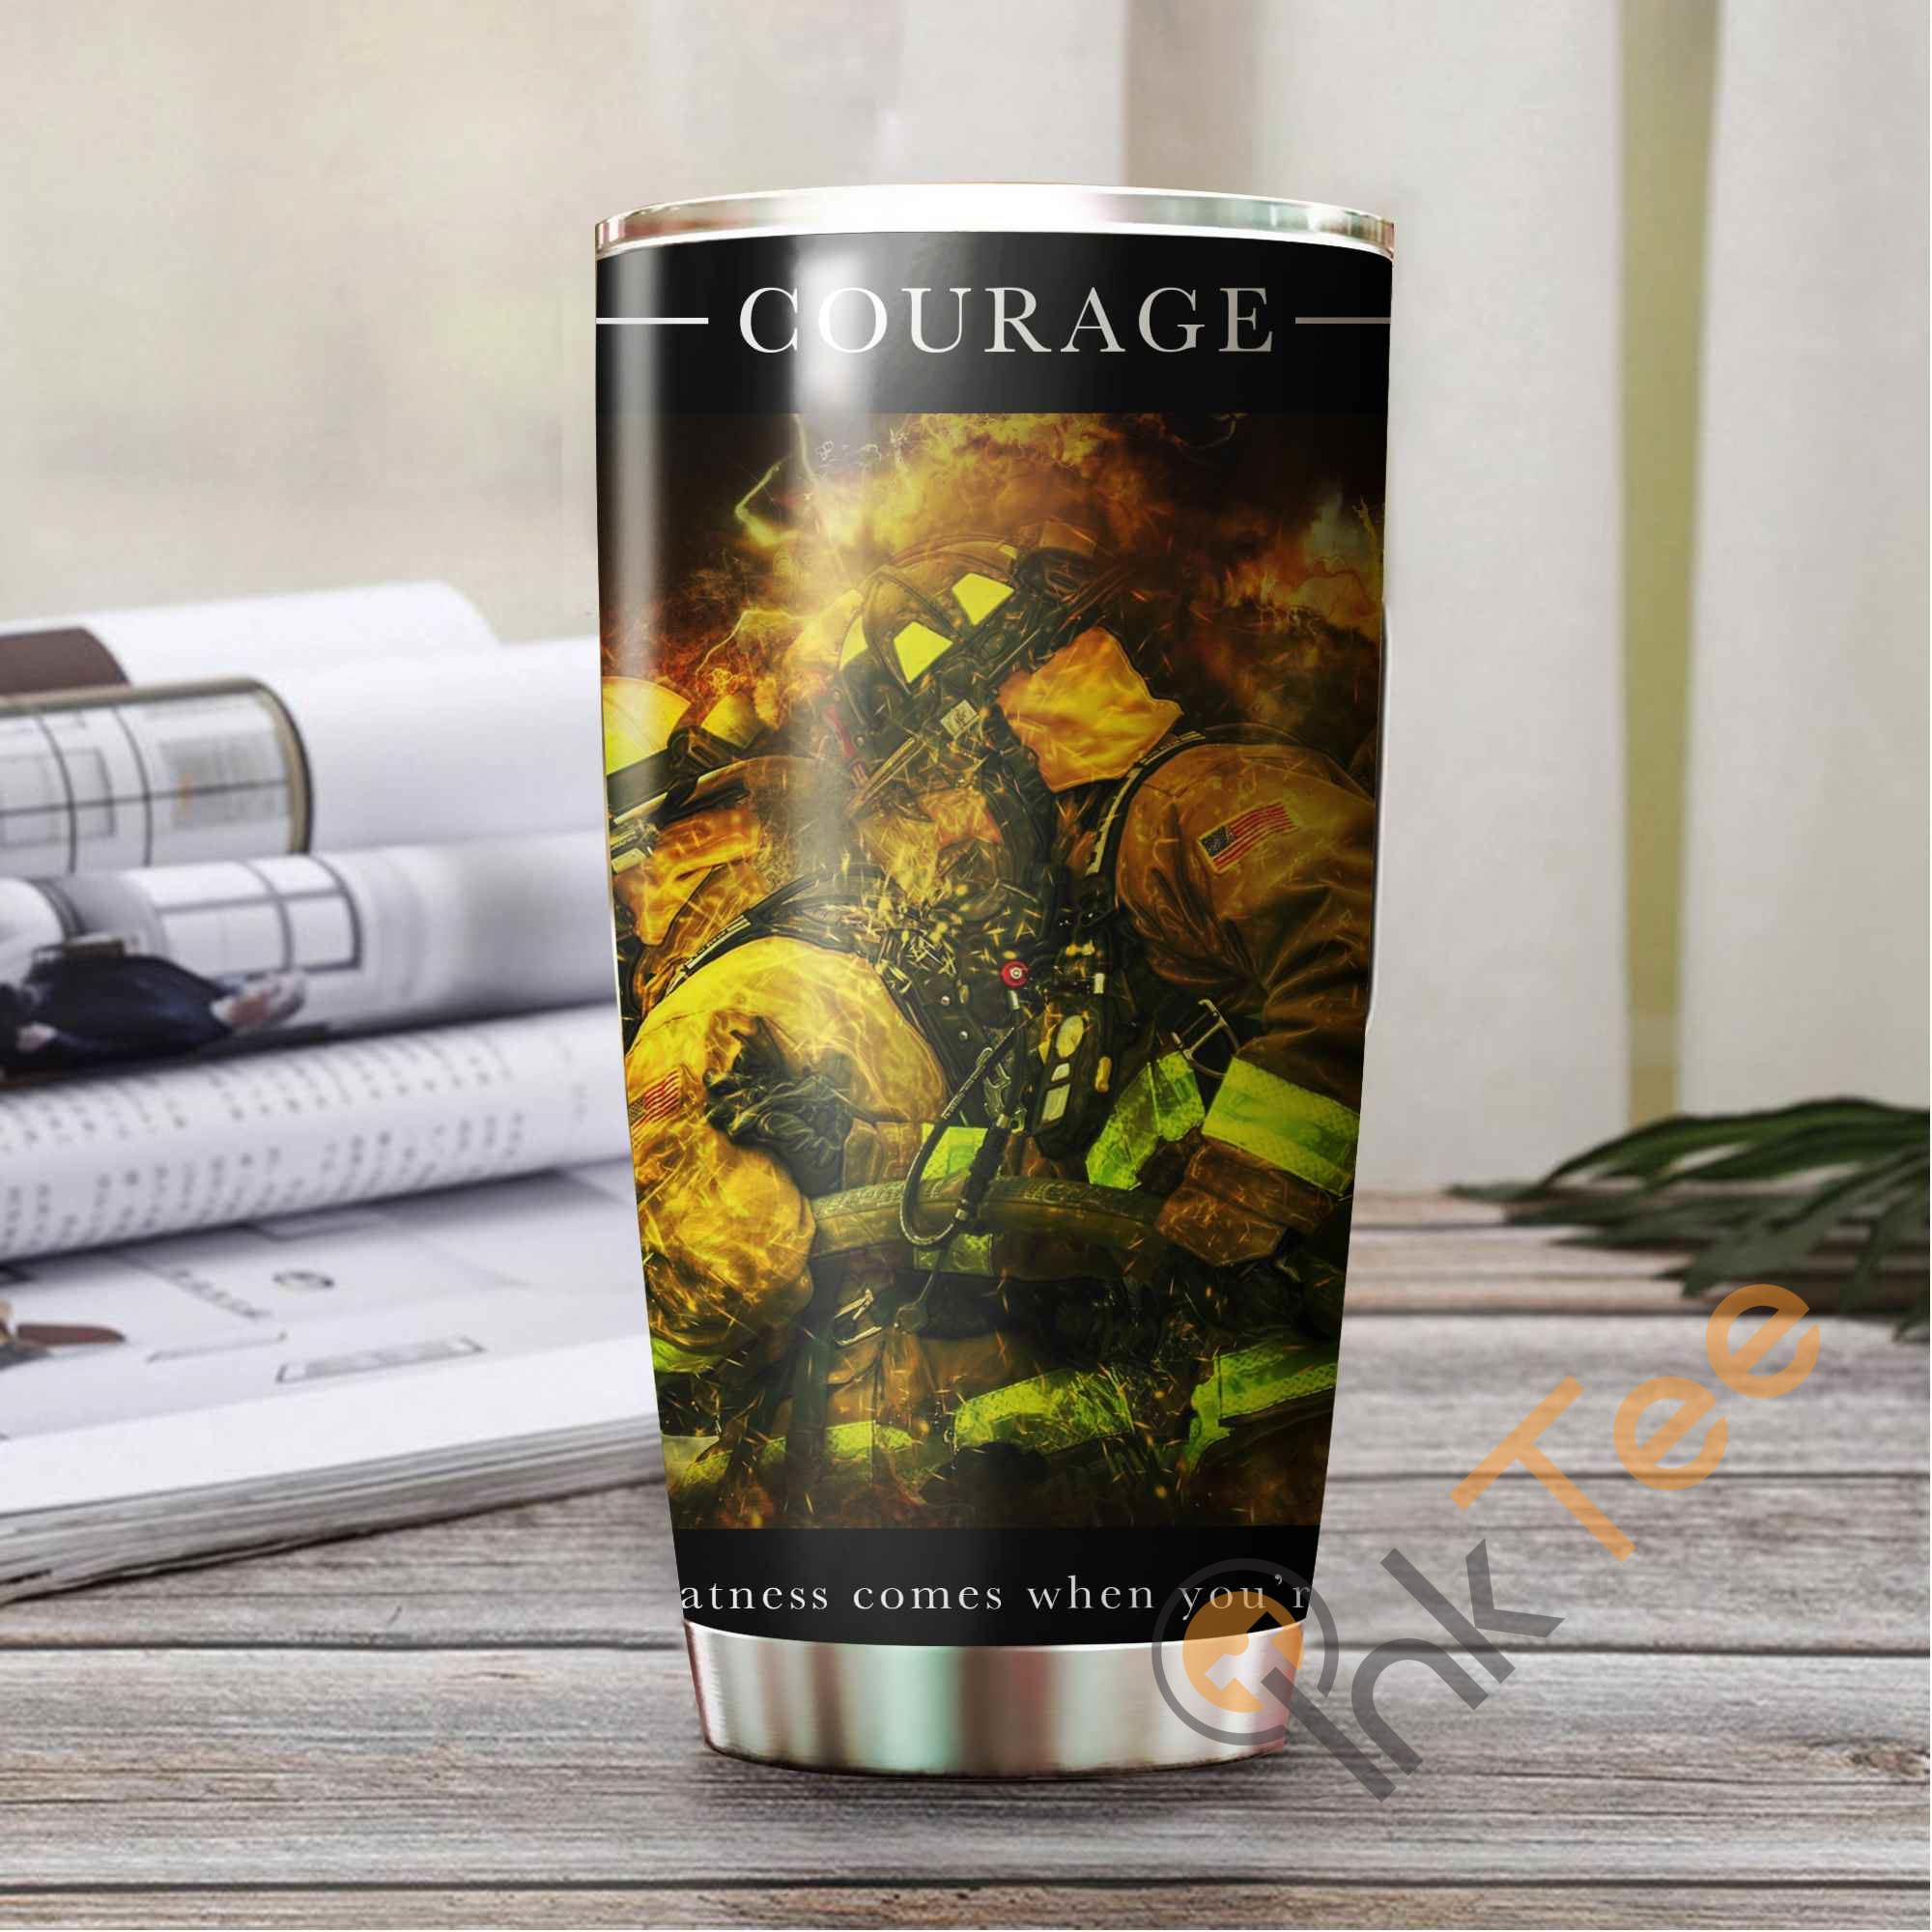 Firefighter's Courage Amazon Best Seller Sku 3078 Stainless Steel Tumbler